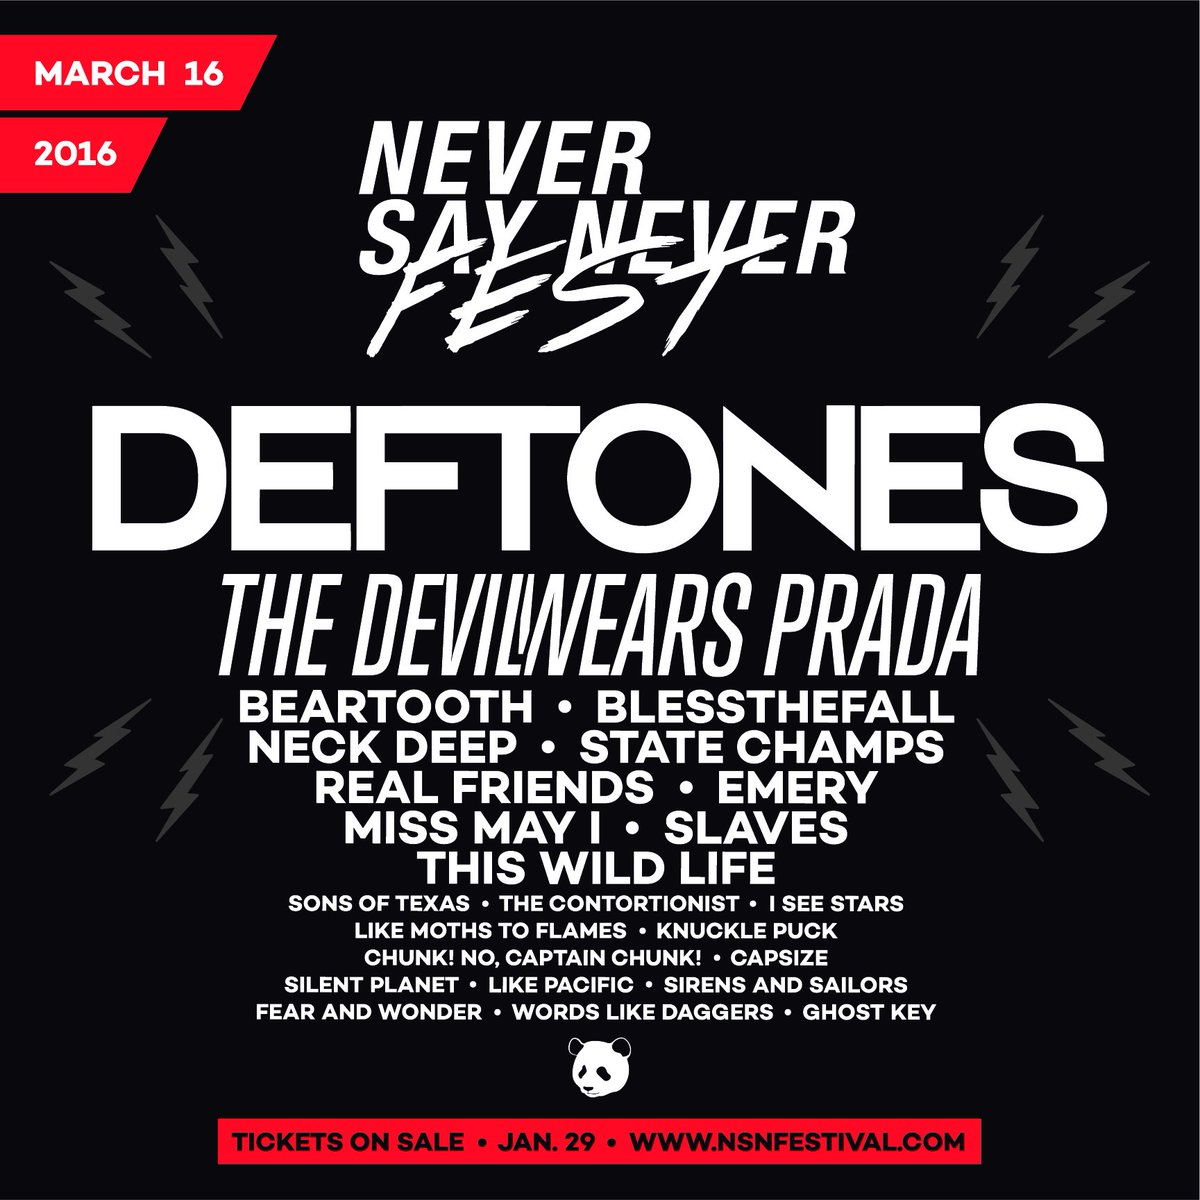 DEFTONES, Miss May I, Sons of Texas, The Contortionist, I See Stars, Capsize and more join NSN FEST! https://t.co/v3nfpQUJQV